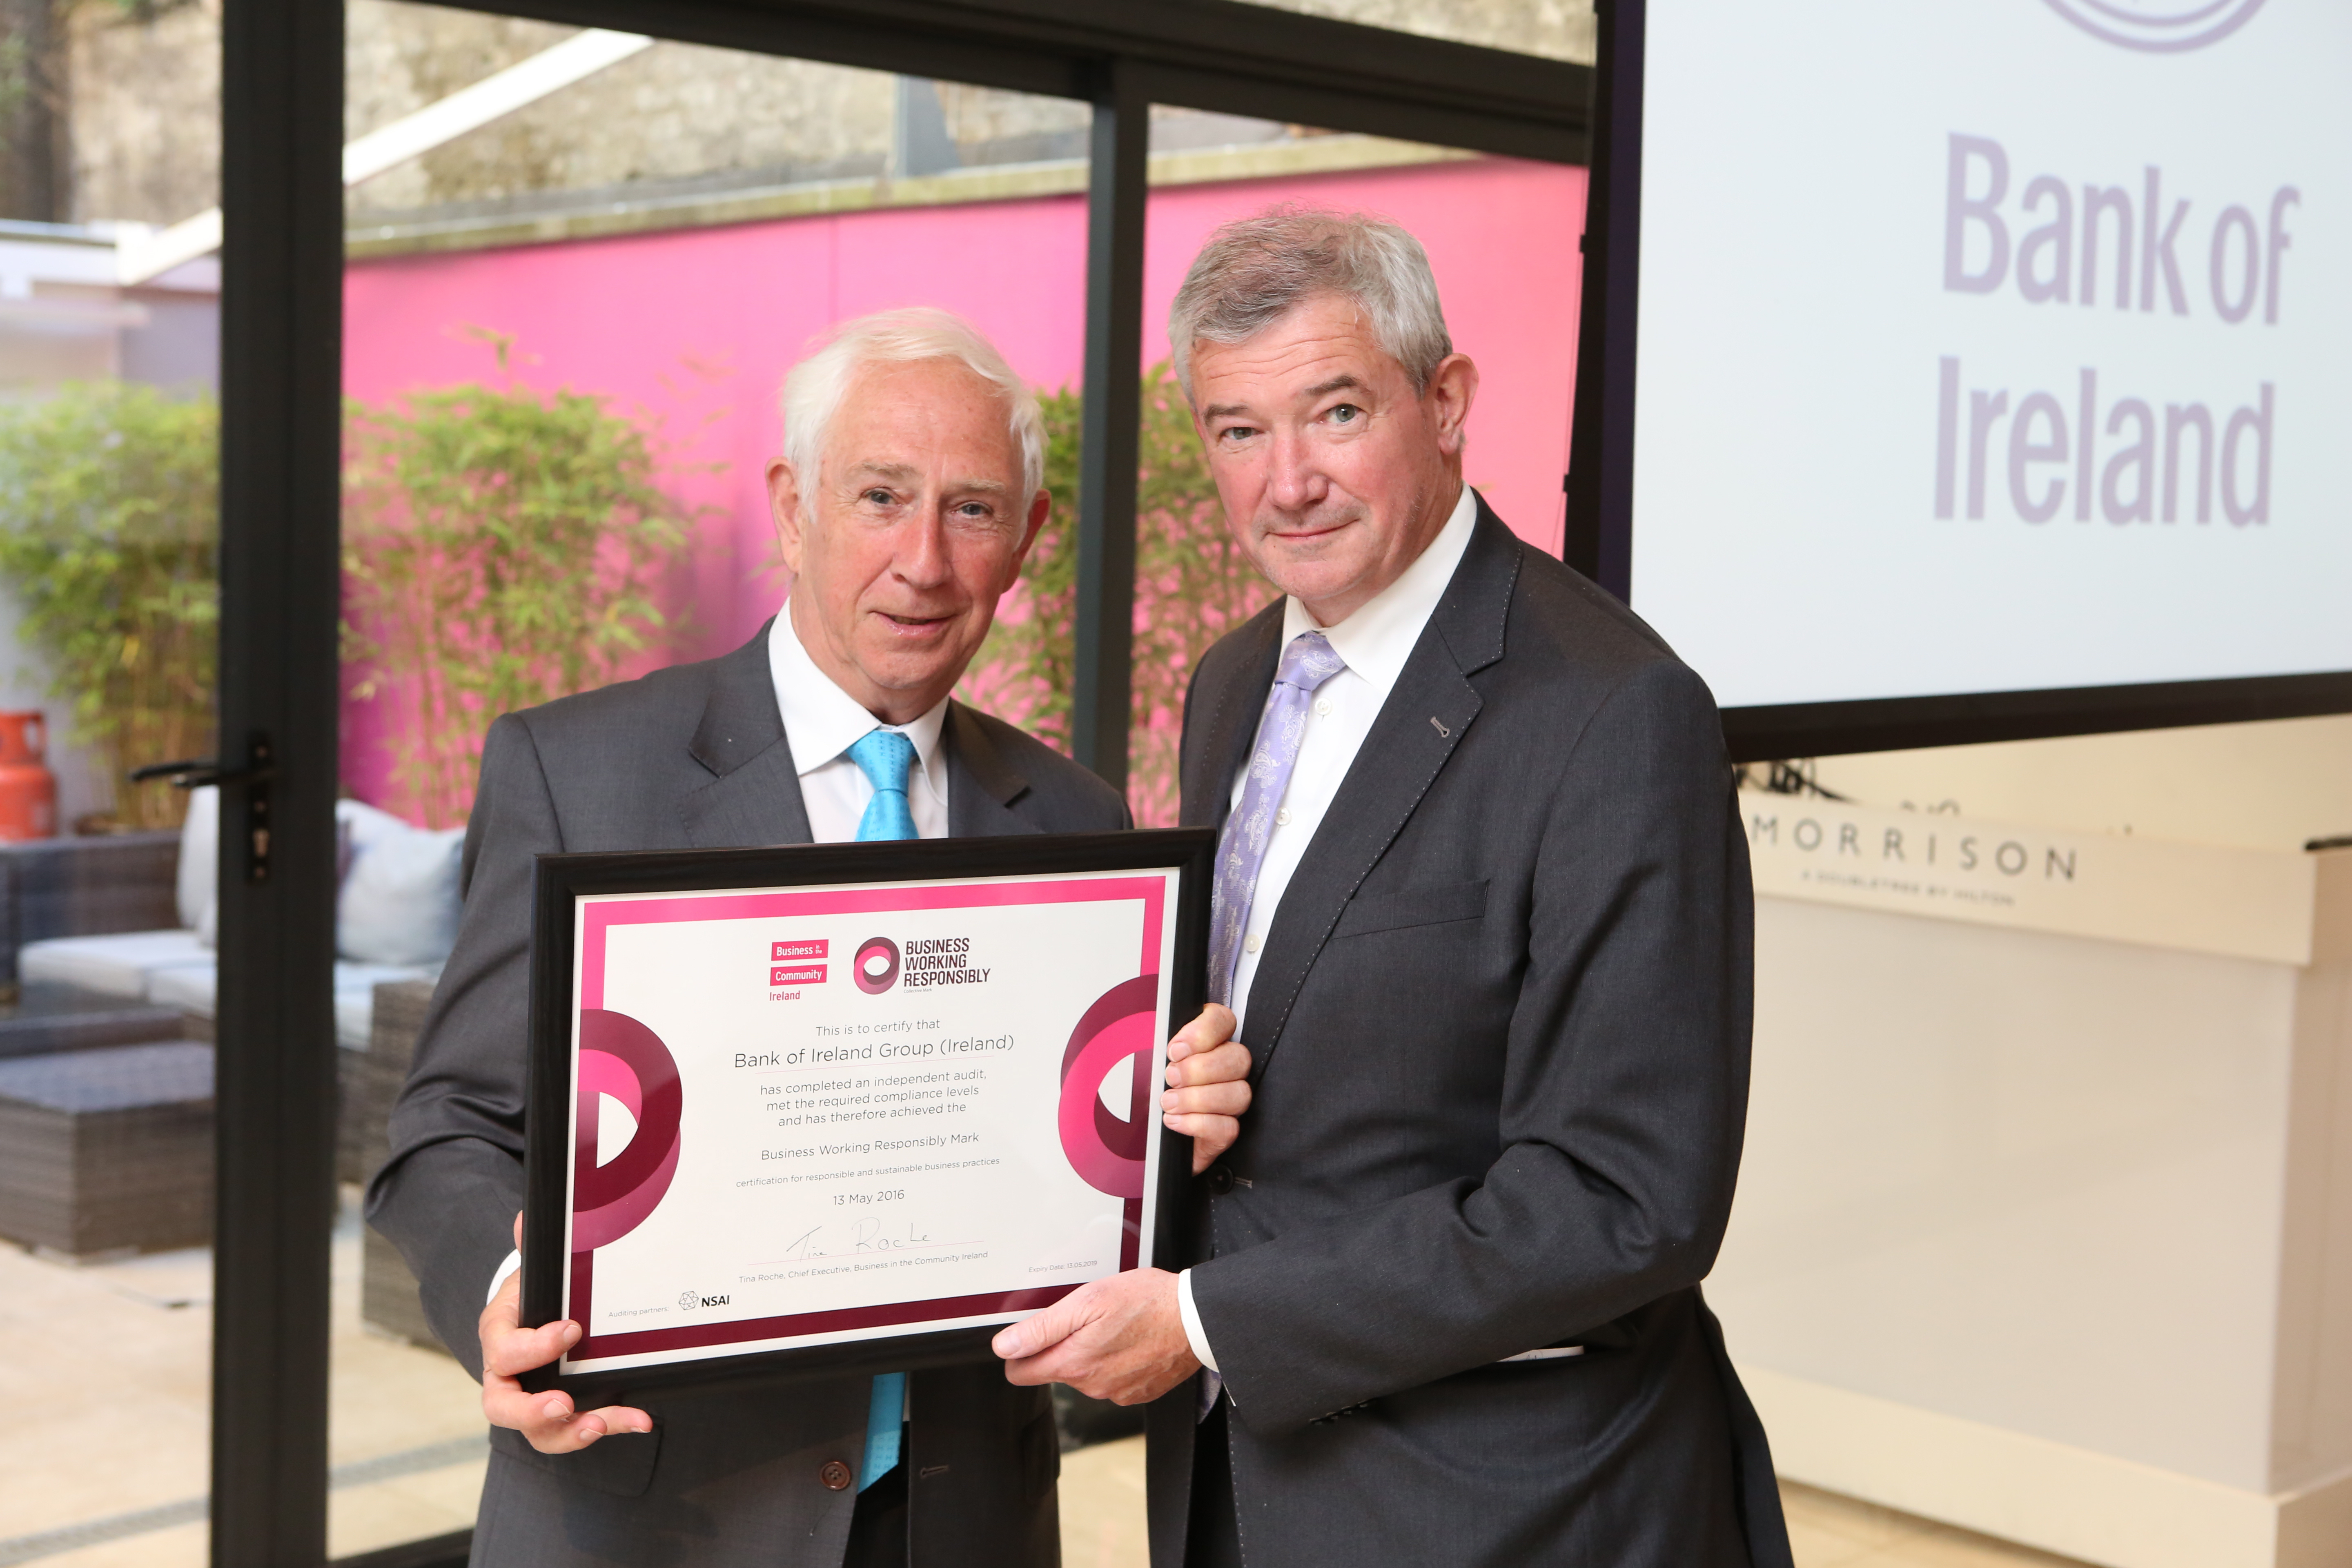 Kieran McGowan, Chairperson Business in the Community Ireland with Richie Boucher, Group Chief Executive Bank of Ireland